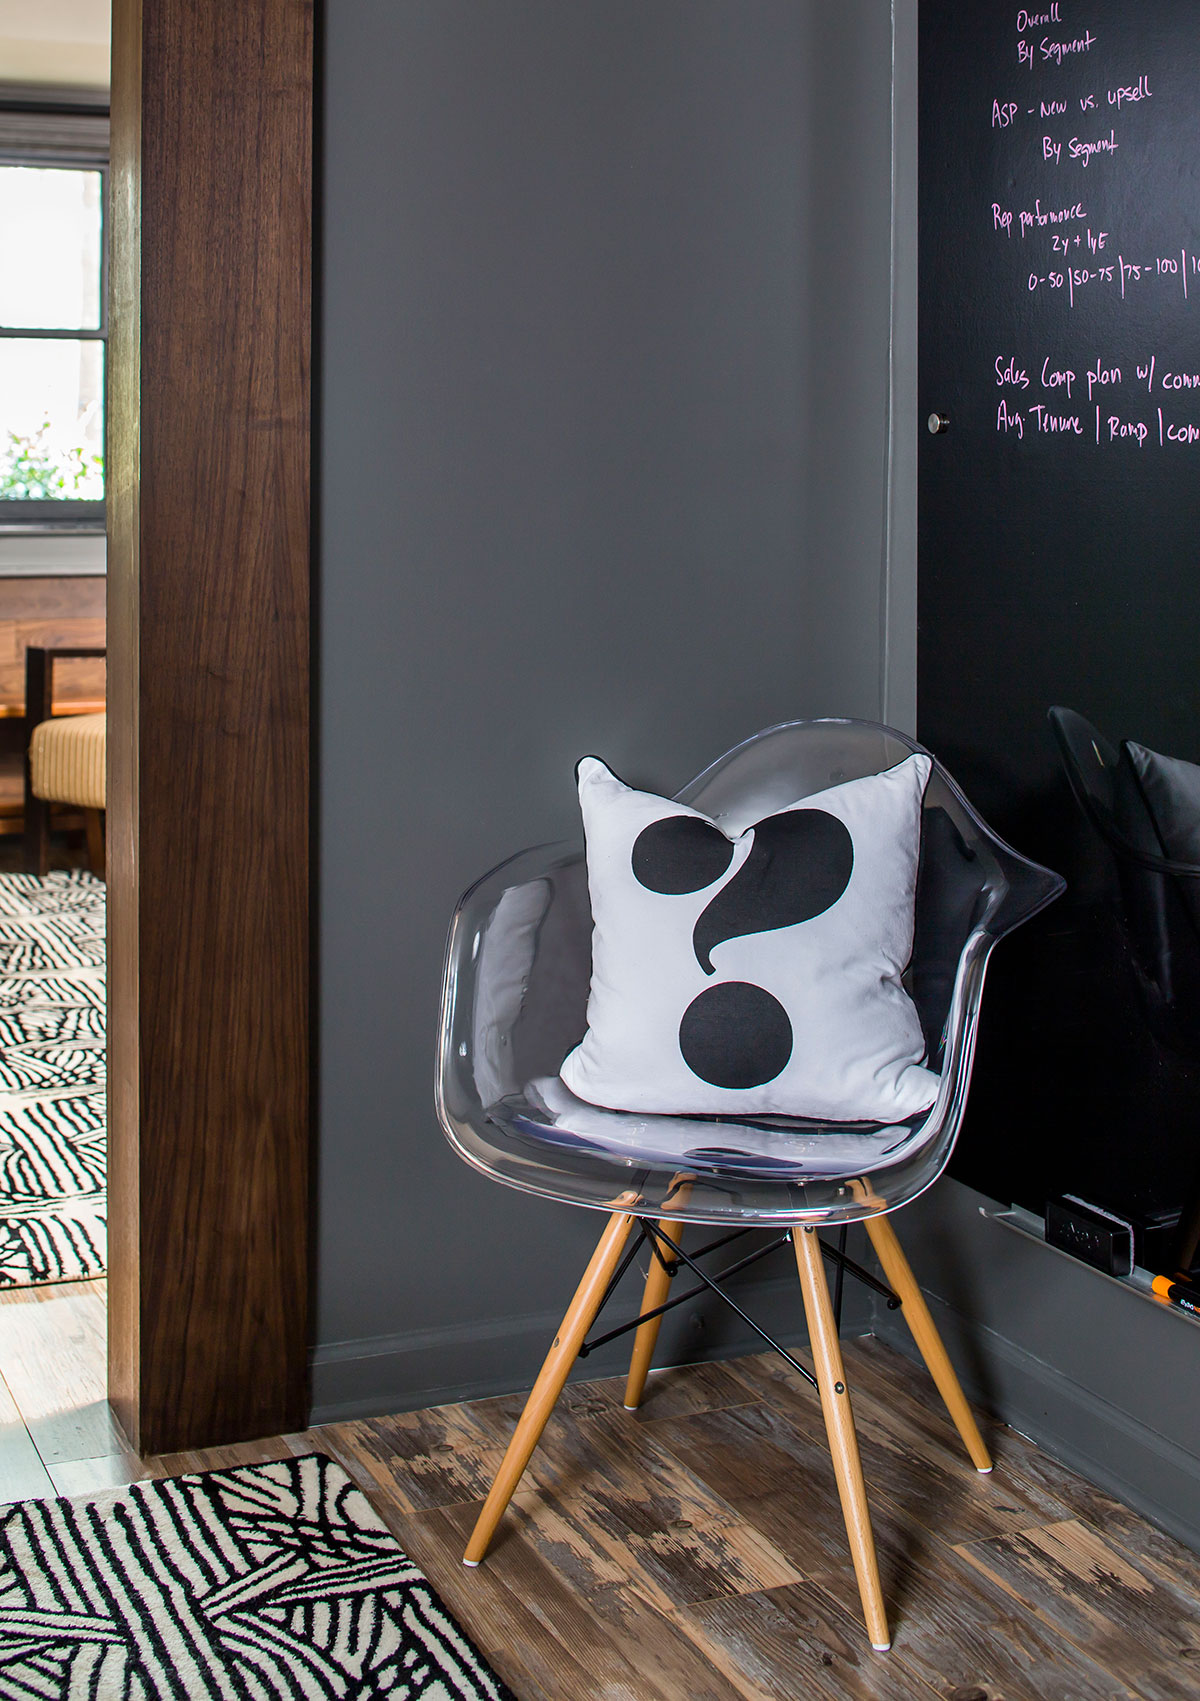 Chalkboard and clear chair with question mark pillow in corner of office